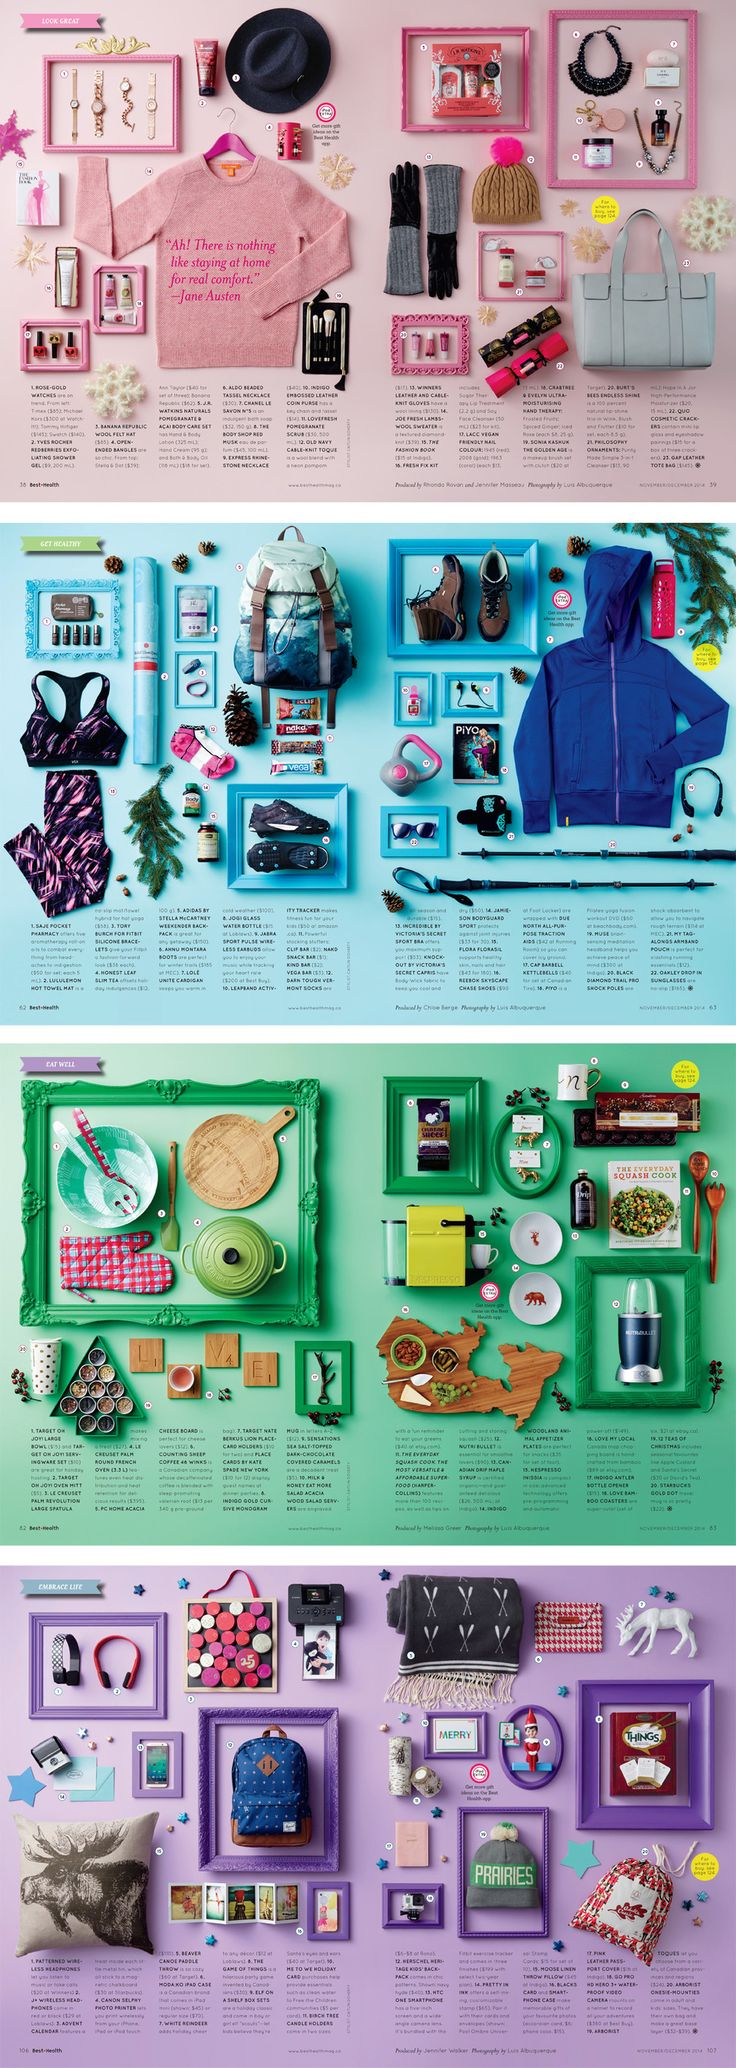 Gift Guide, Nov/Dec 2014 issue, Best Health Magazine More